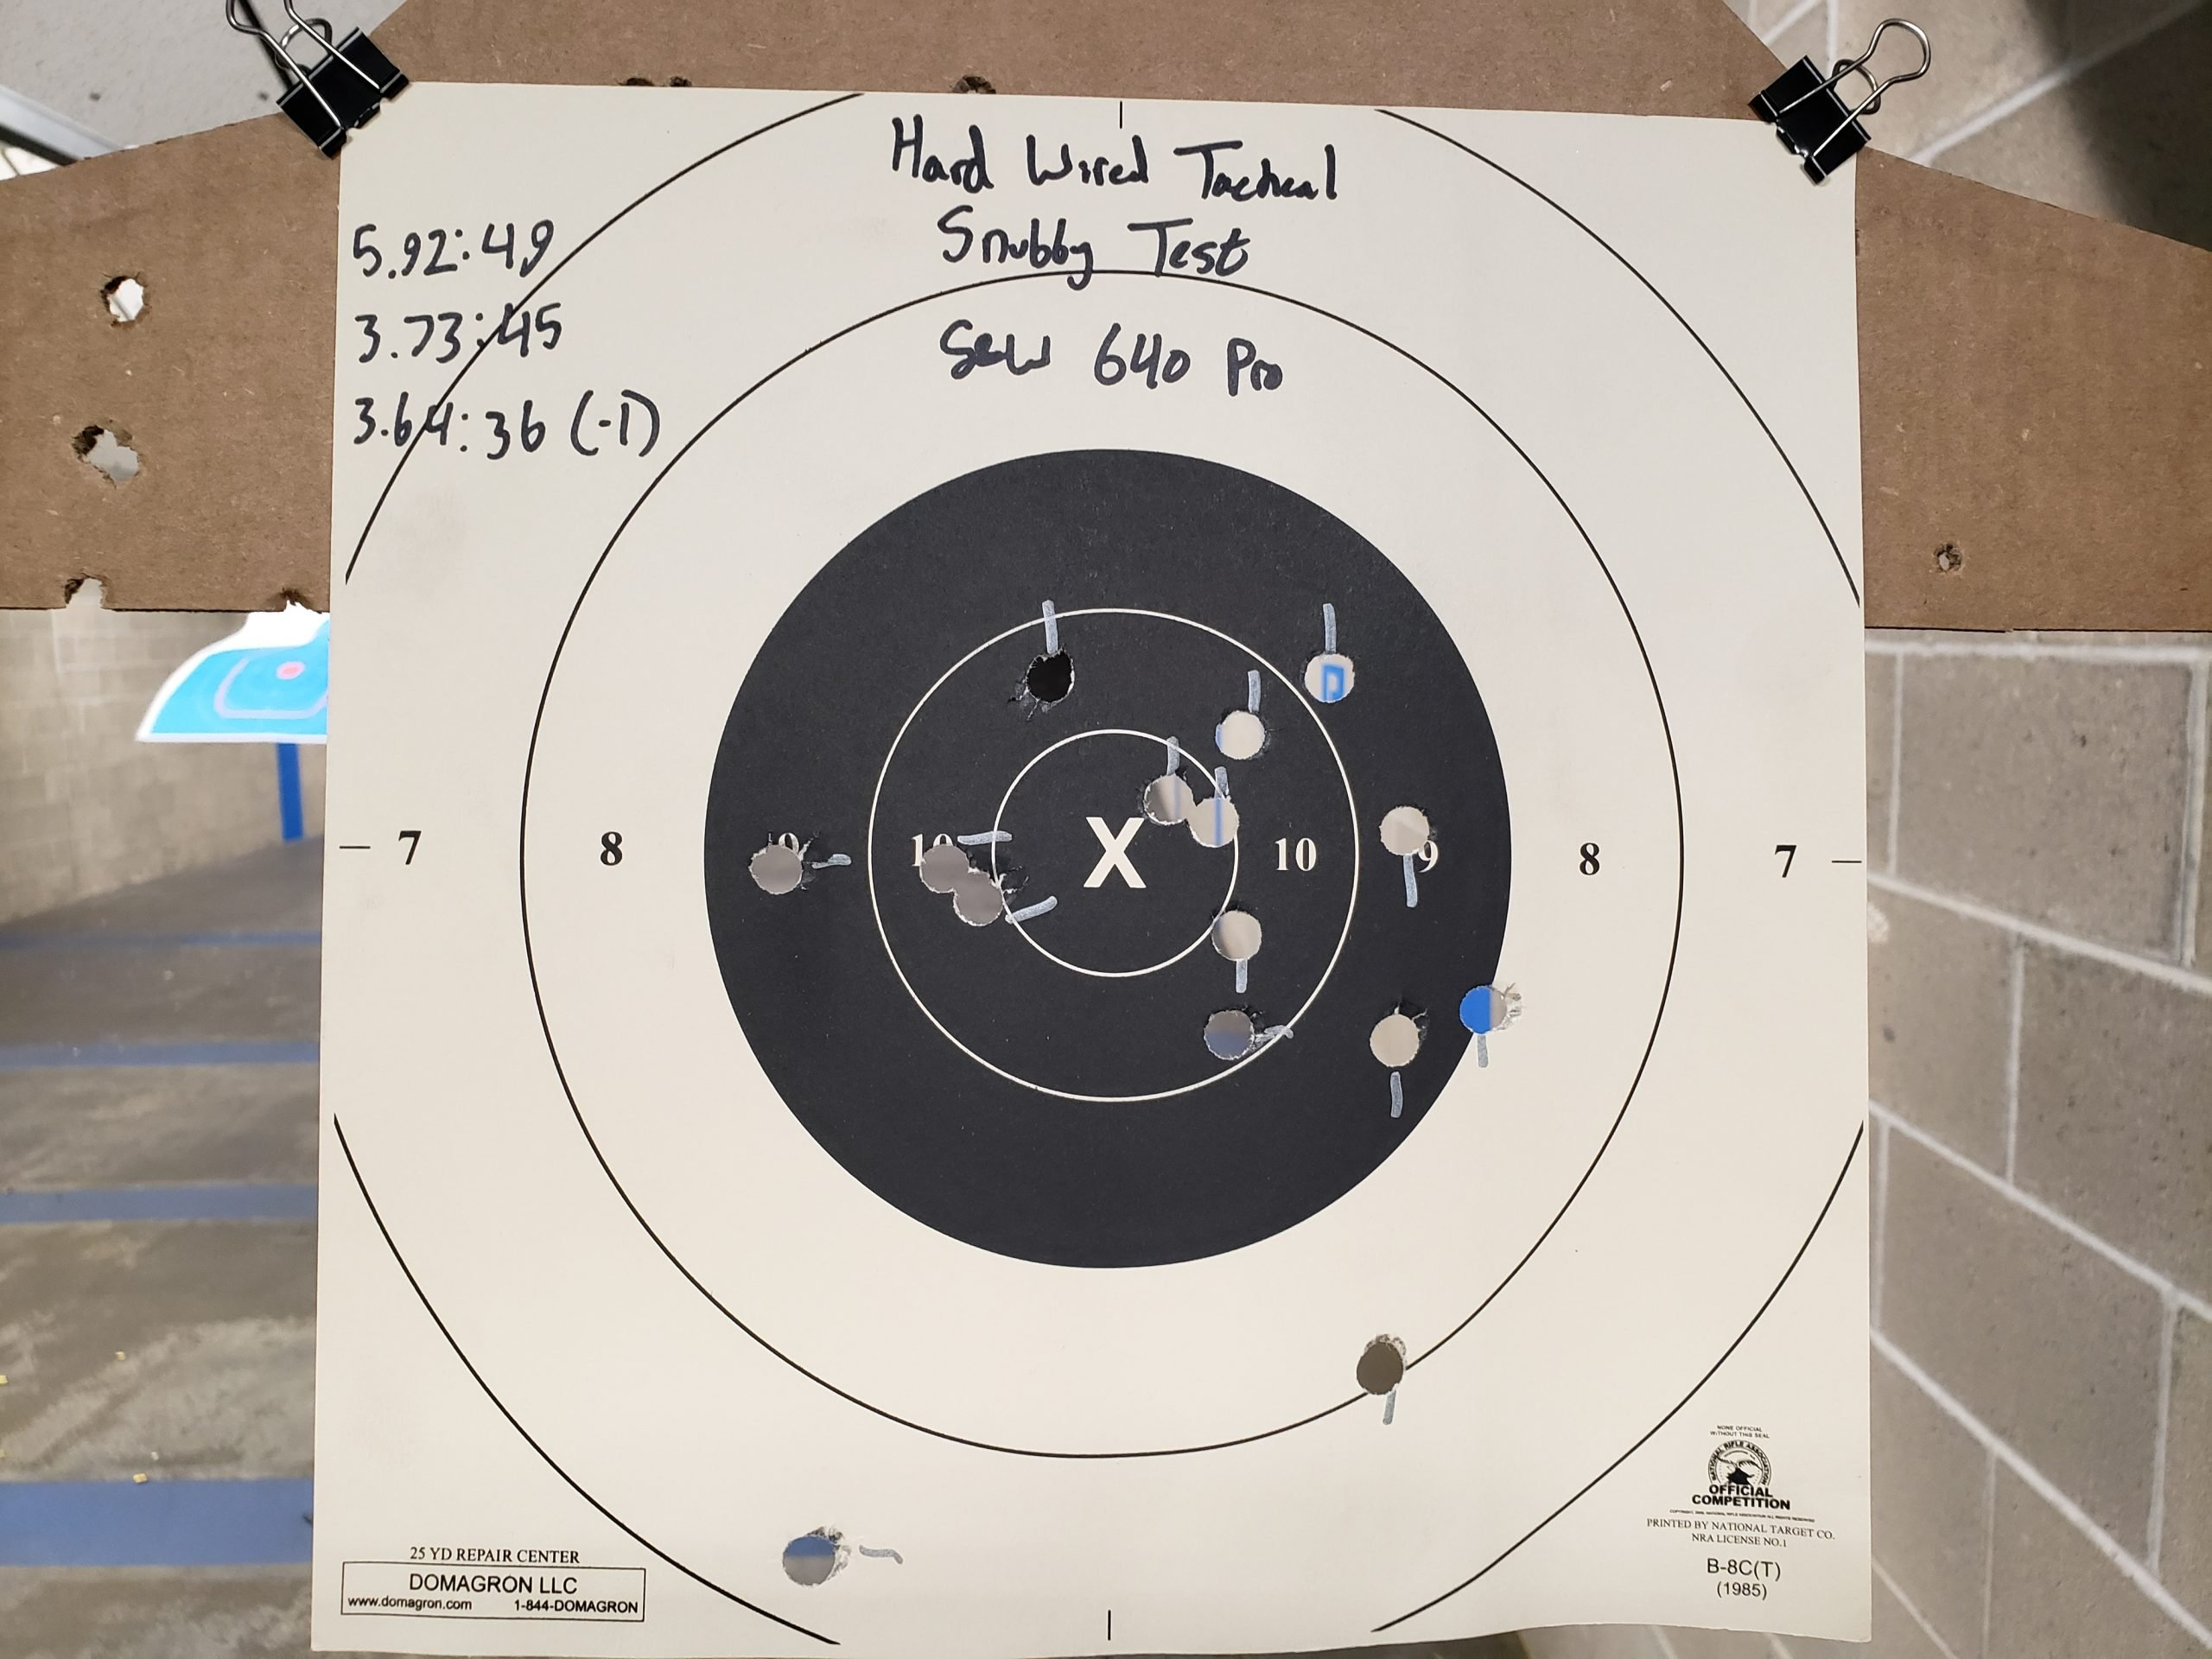 Hardwired Tactical Super Snubby Test